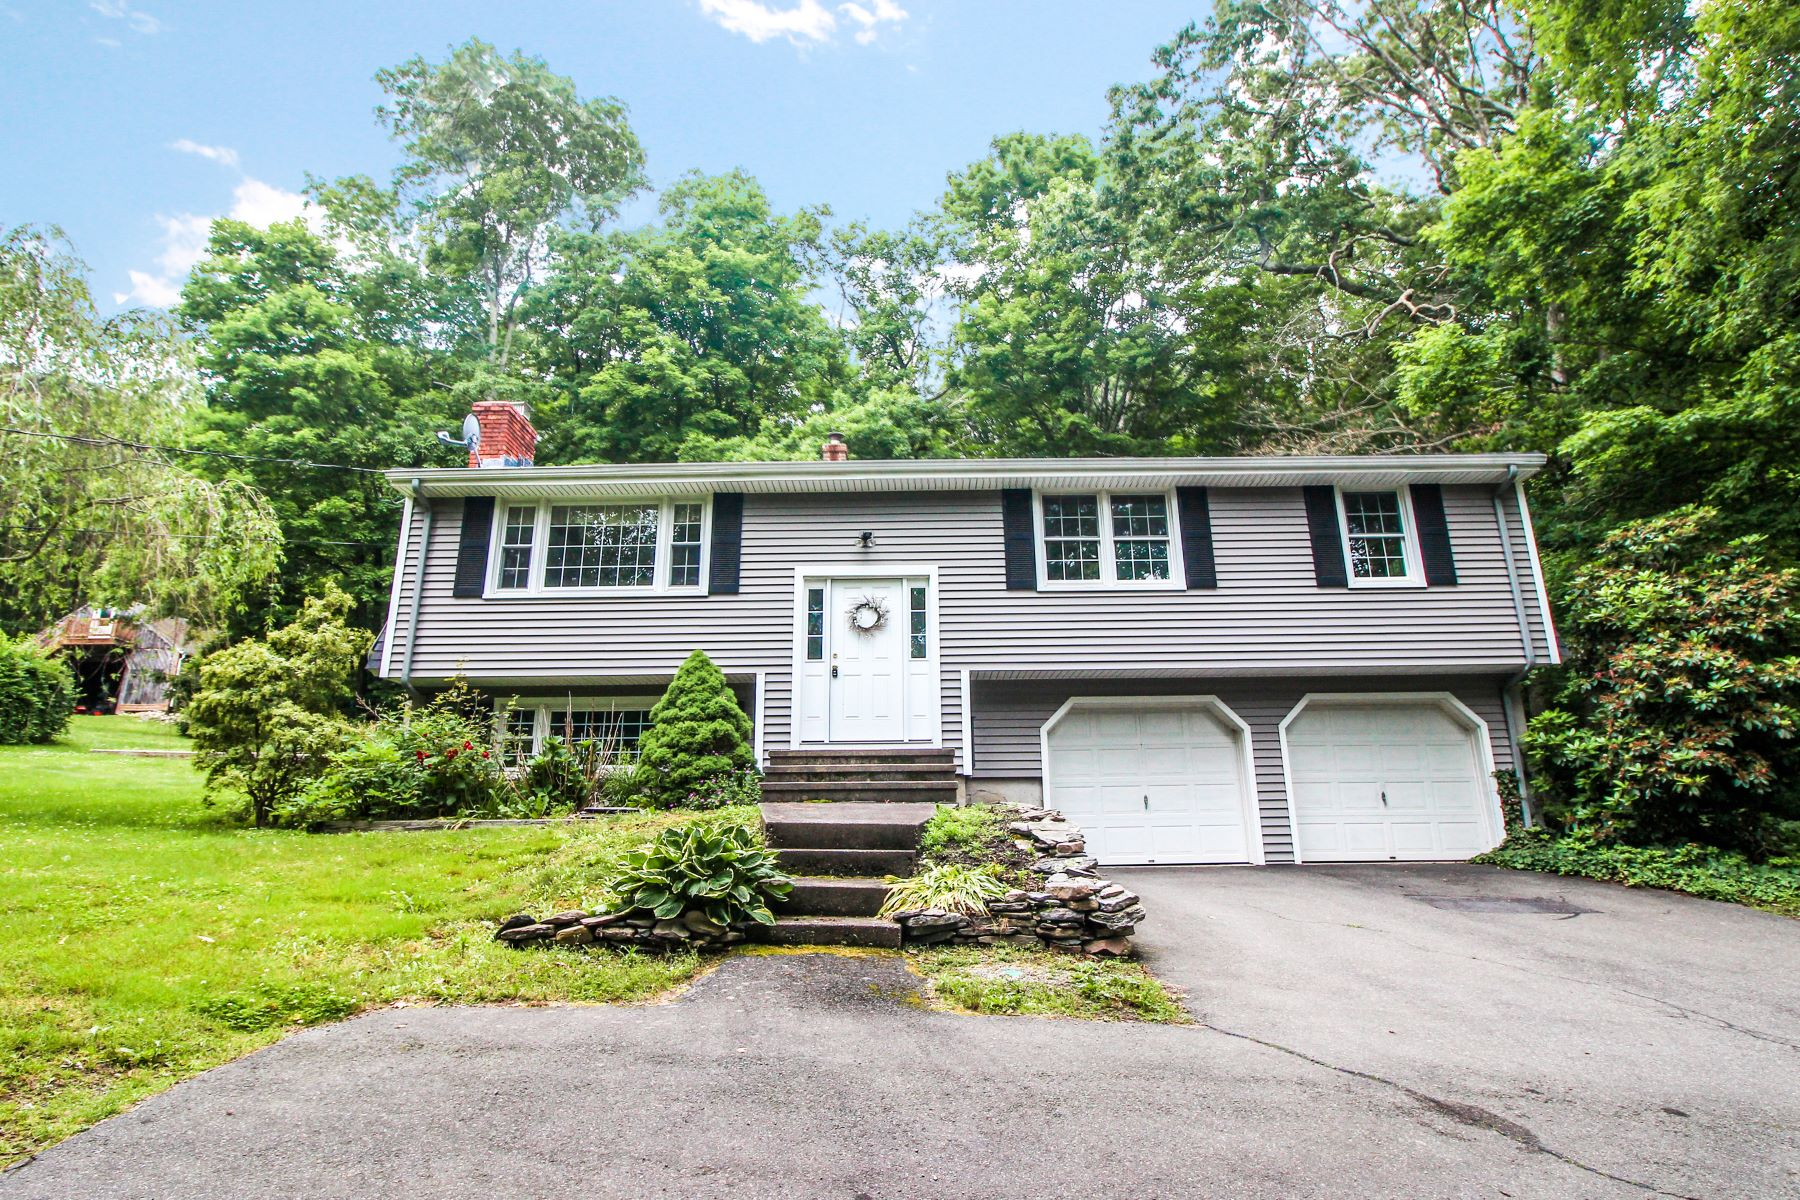 Single Family Homes for Sale at Private, Well-Maintained Raised Ranch 339 Boston Post Road East Lyme, Connecticut 06333 United States